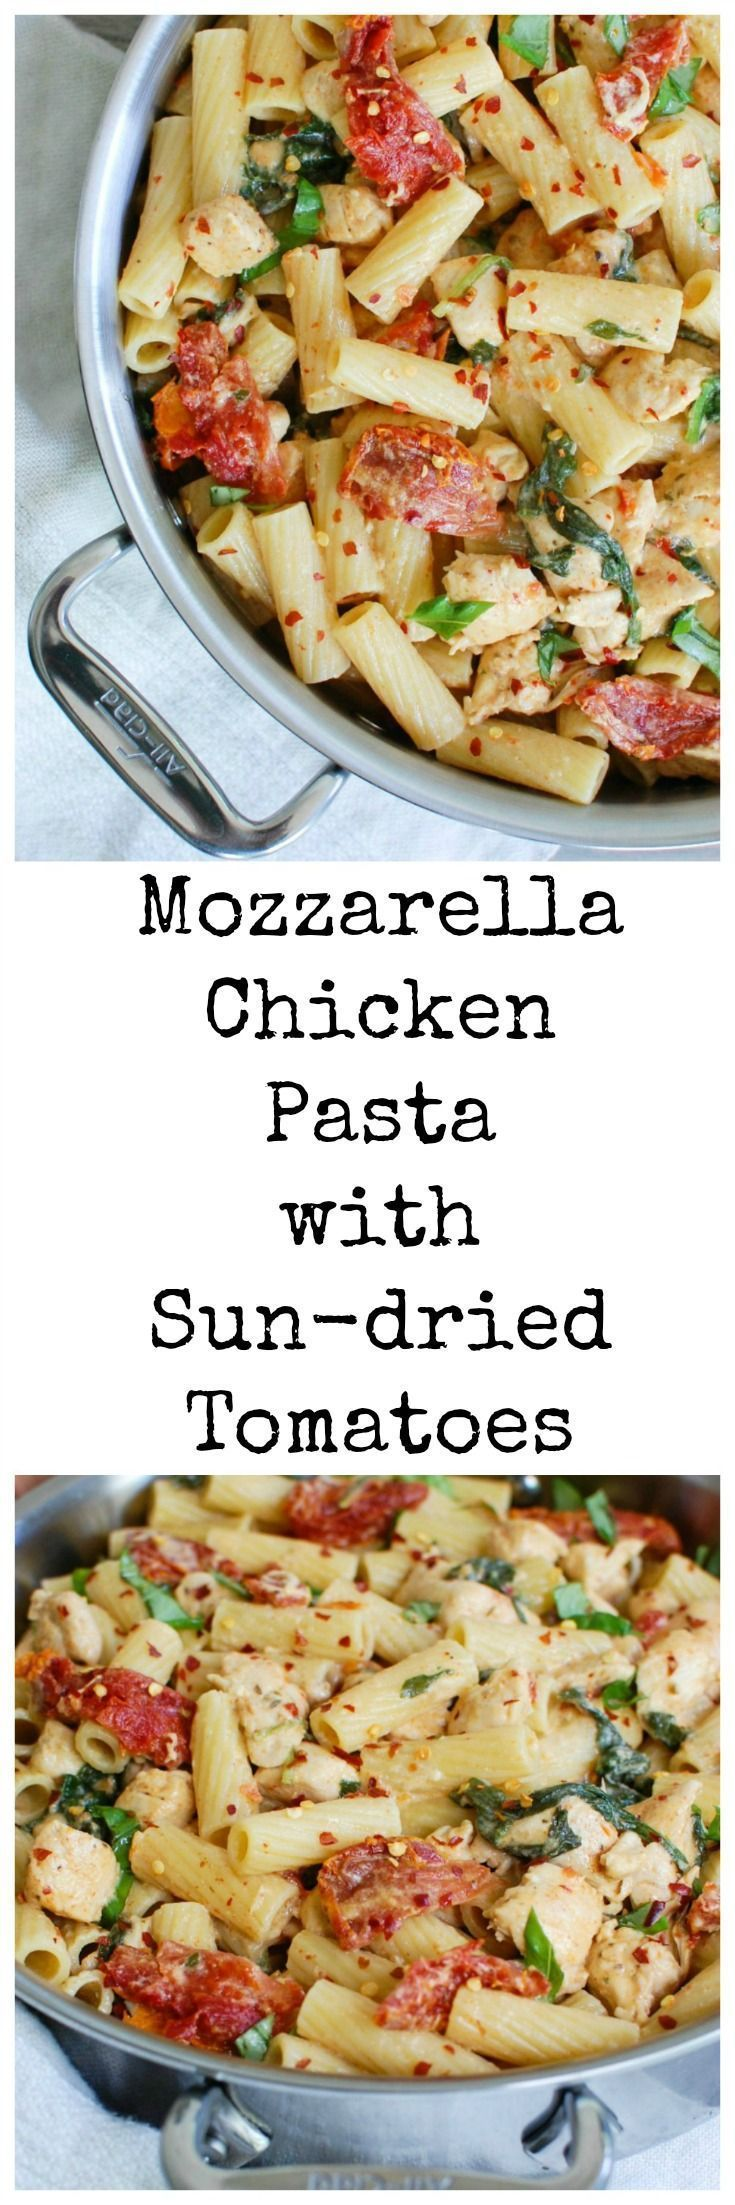 Mozzarella Chicken Pasta with Sun-dried Tomatoes comes together in 30 minutes. Tender chicken is mixed with fresh spinach and herbs, sun-dried tomatoes and a creamy sauce over your favorite pasta. // A Cedar Spoon